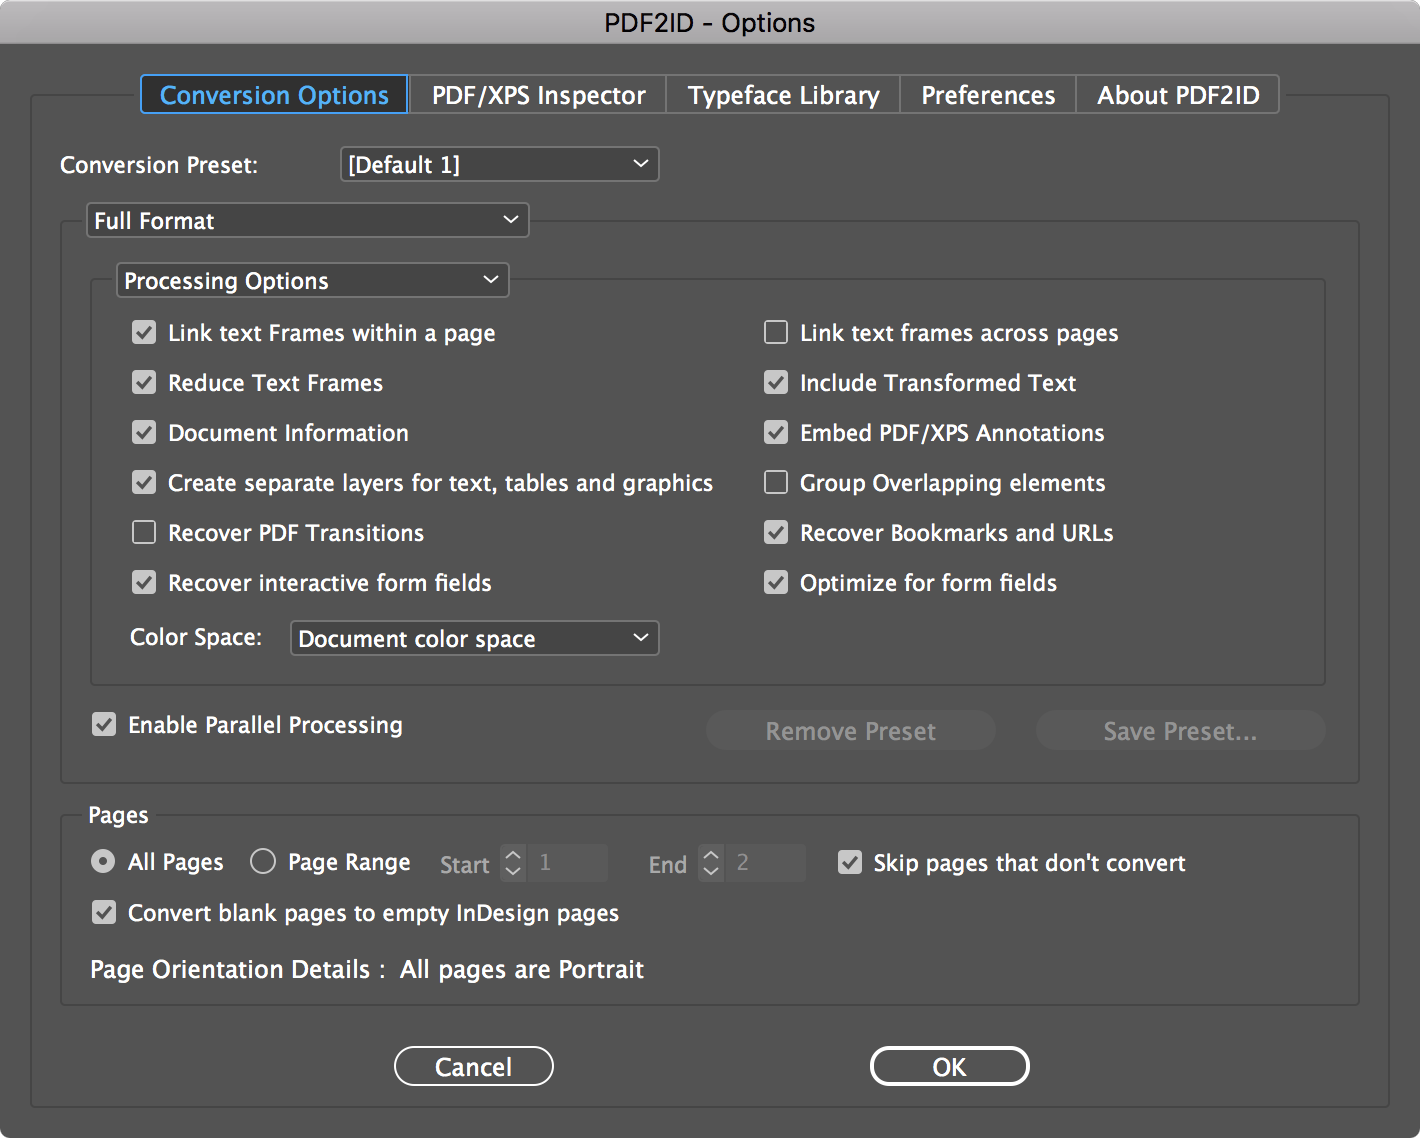 Recosoft releases PDF2ID 2019 - PDF to InDesign CC 2019 plug-in ships Image